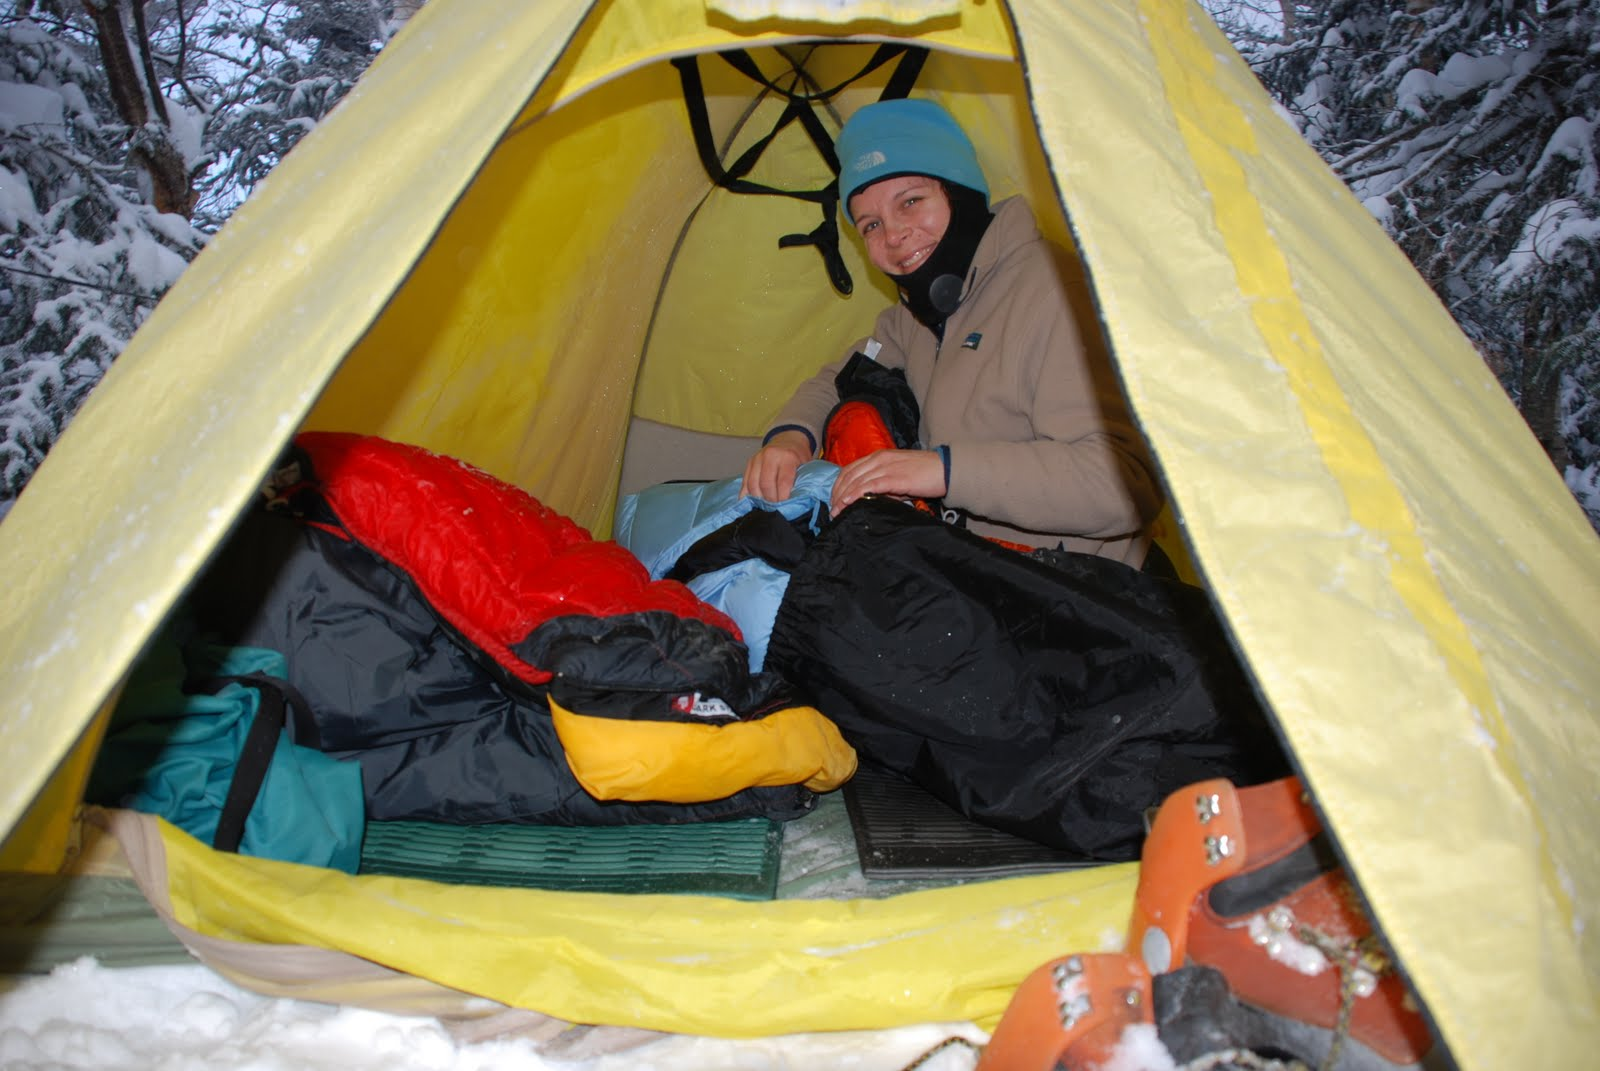 4b3bdacefa0 Snug up with the right sleep system for winter camping - Appalachian ...